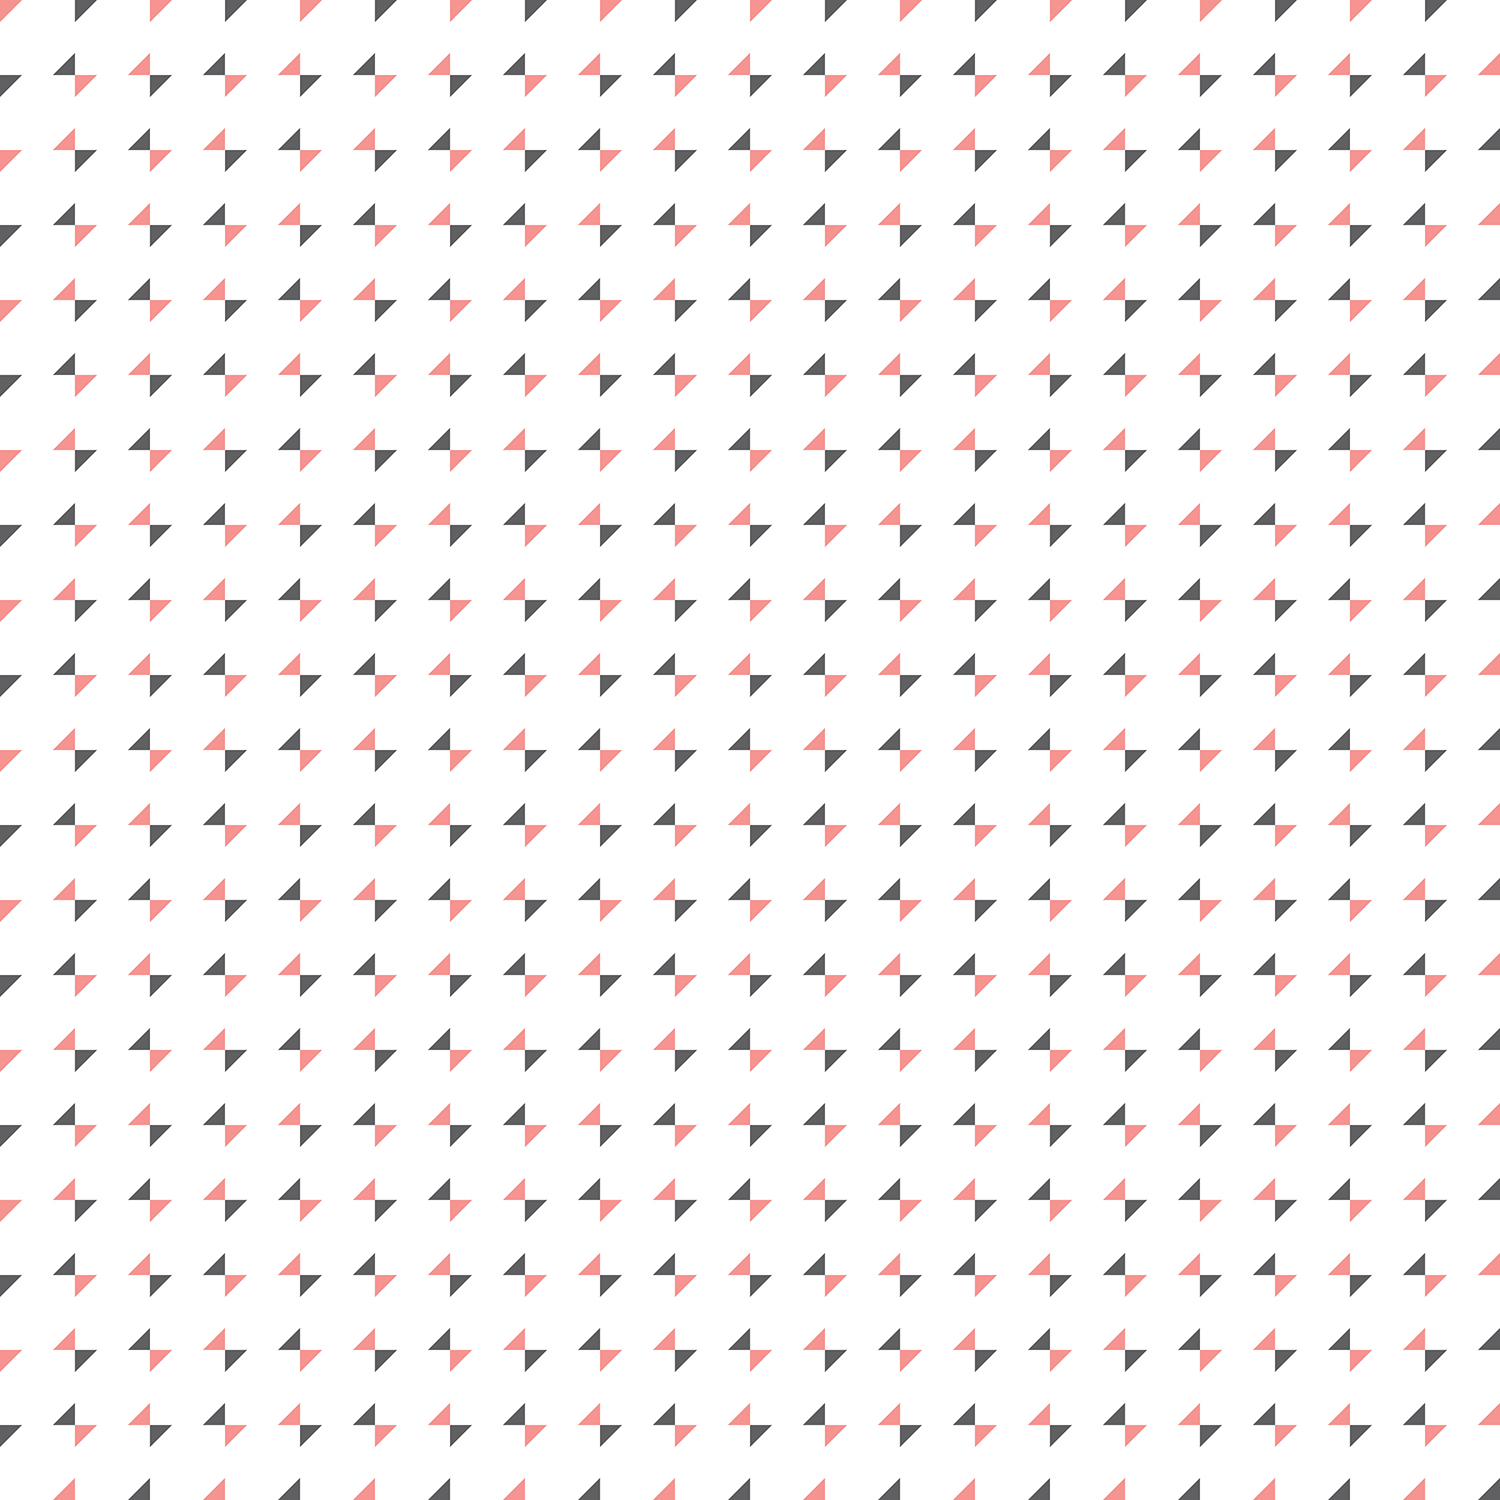 Seamless Patterns example image 6